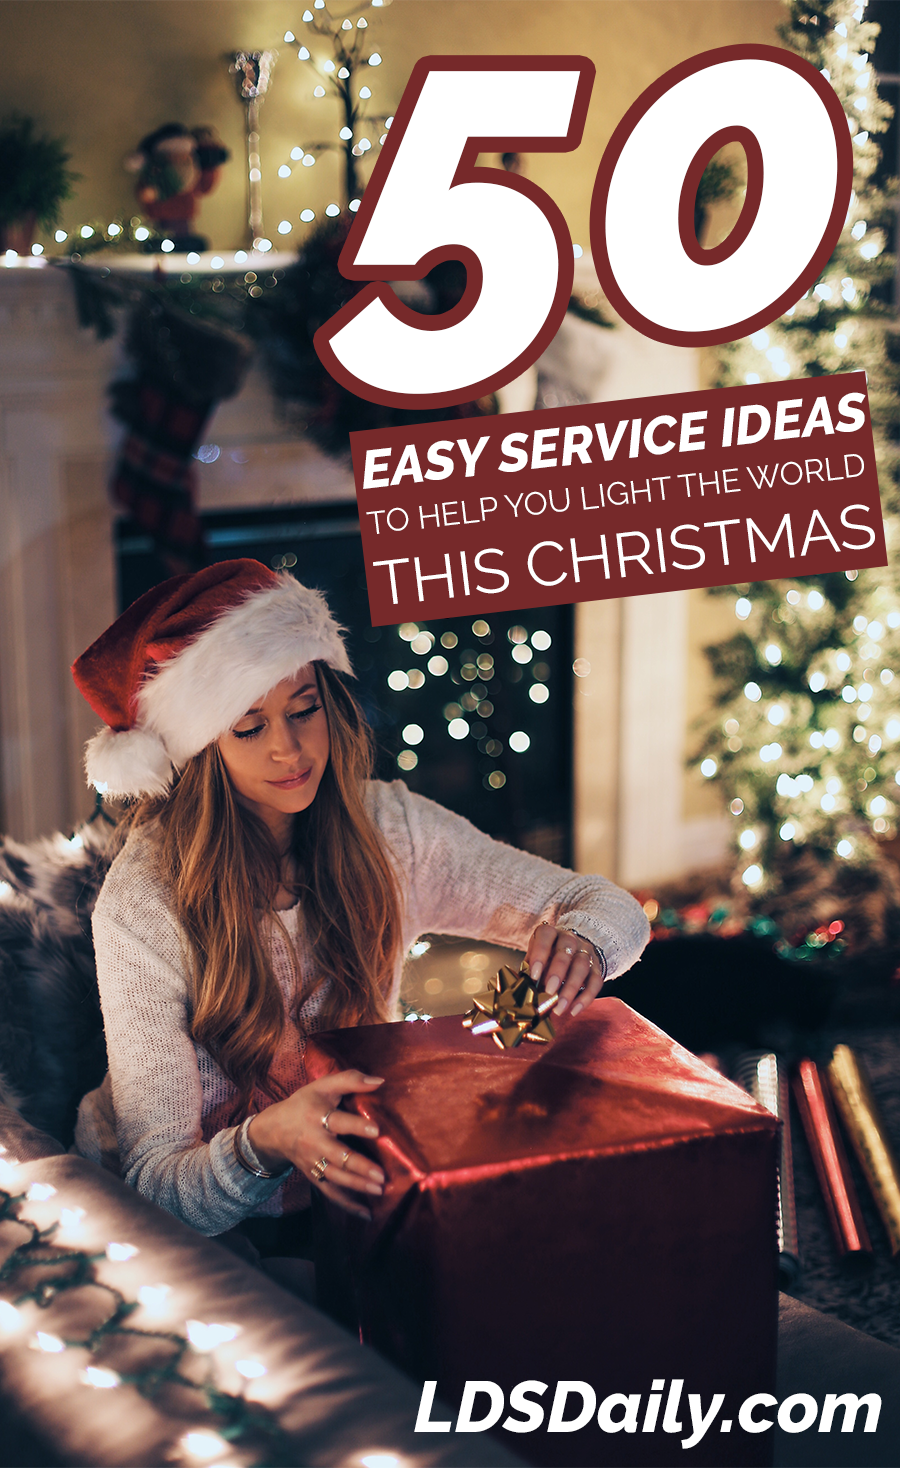 50-easy-service-ideas-for-christmas